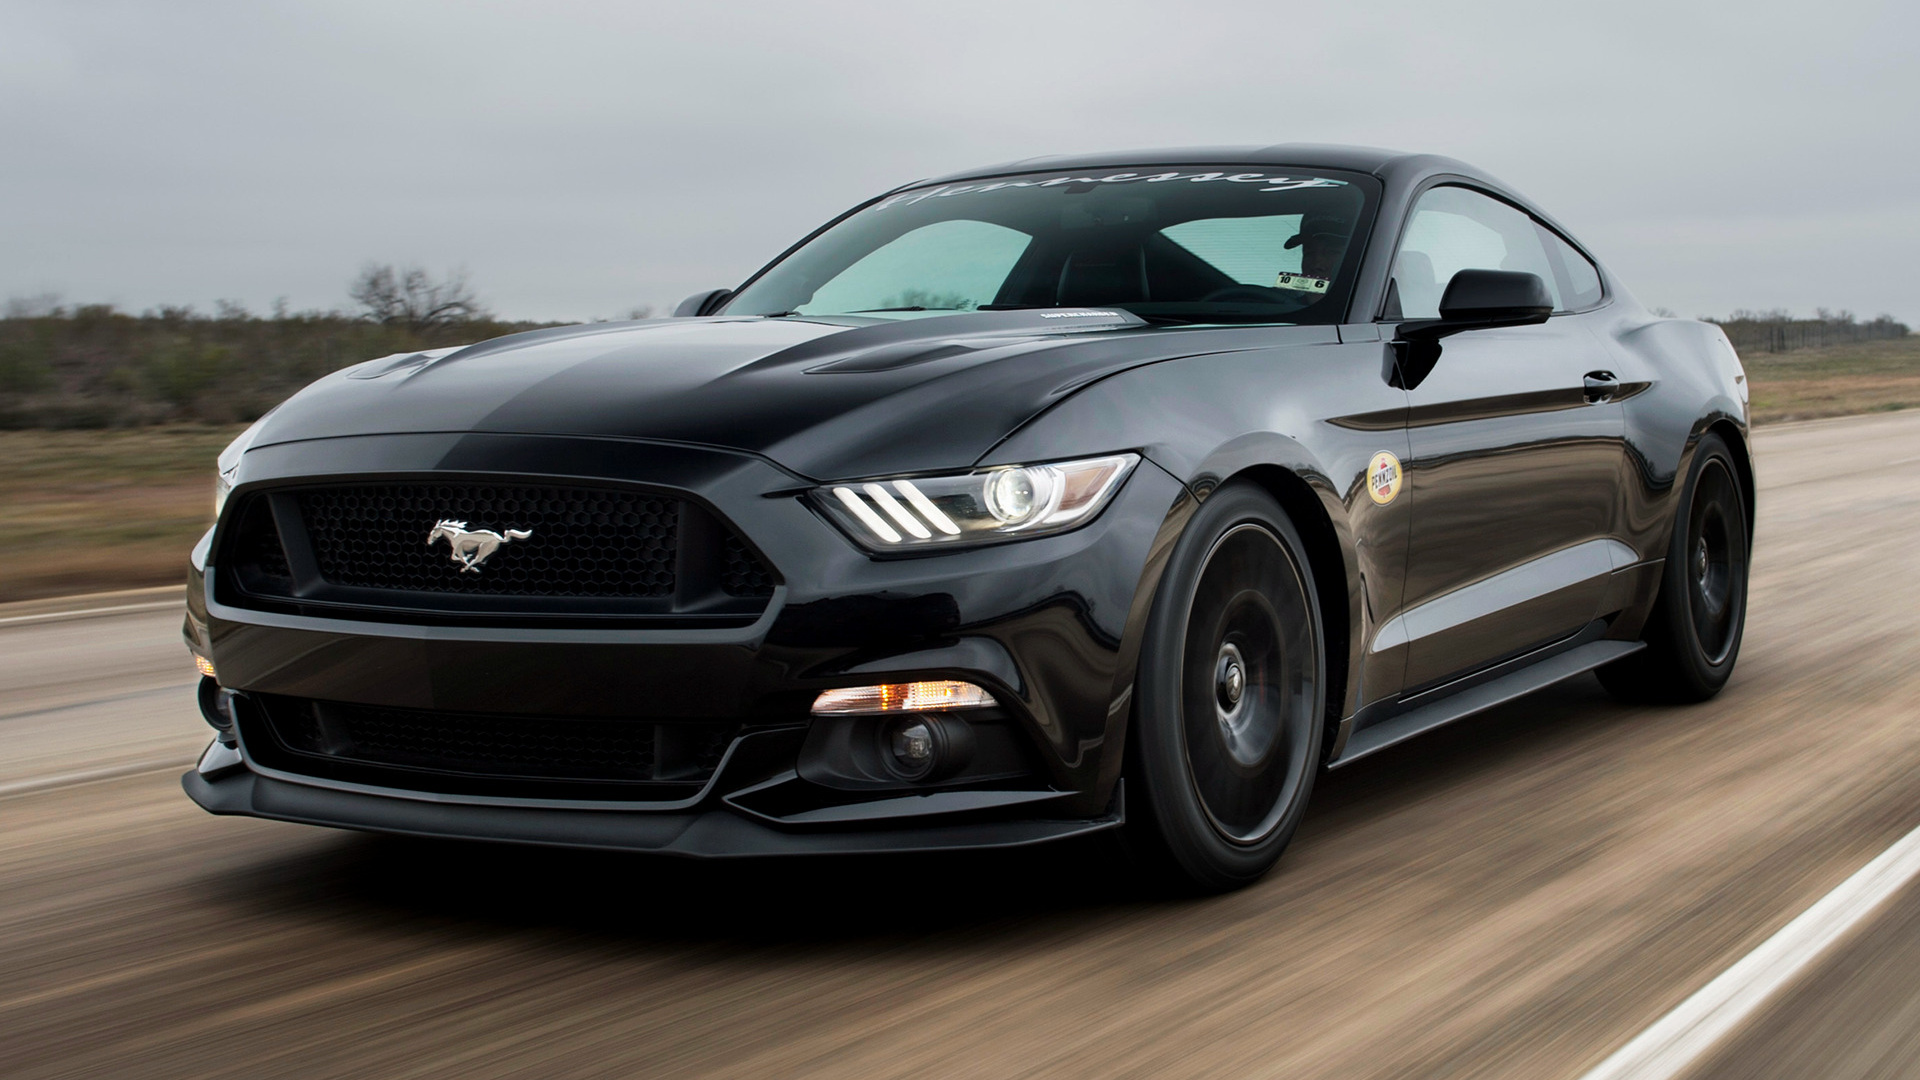 Hennessey Mustang Gt Hpe700 Supercharged 2015 Wallpapers